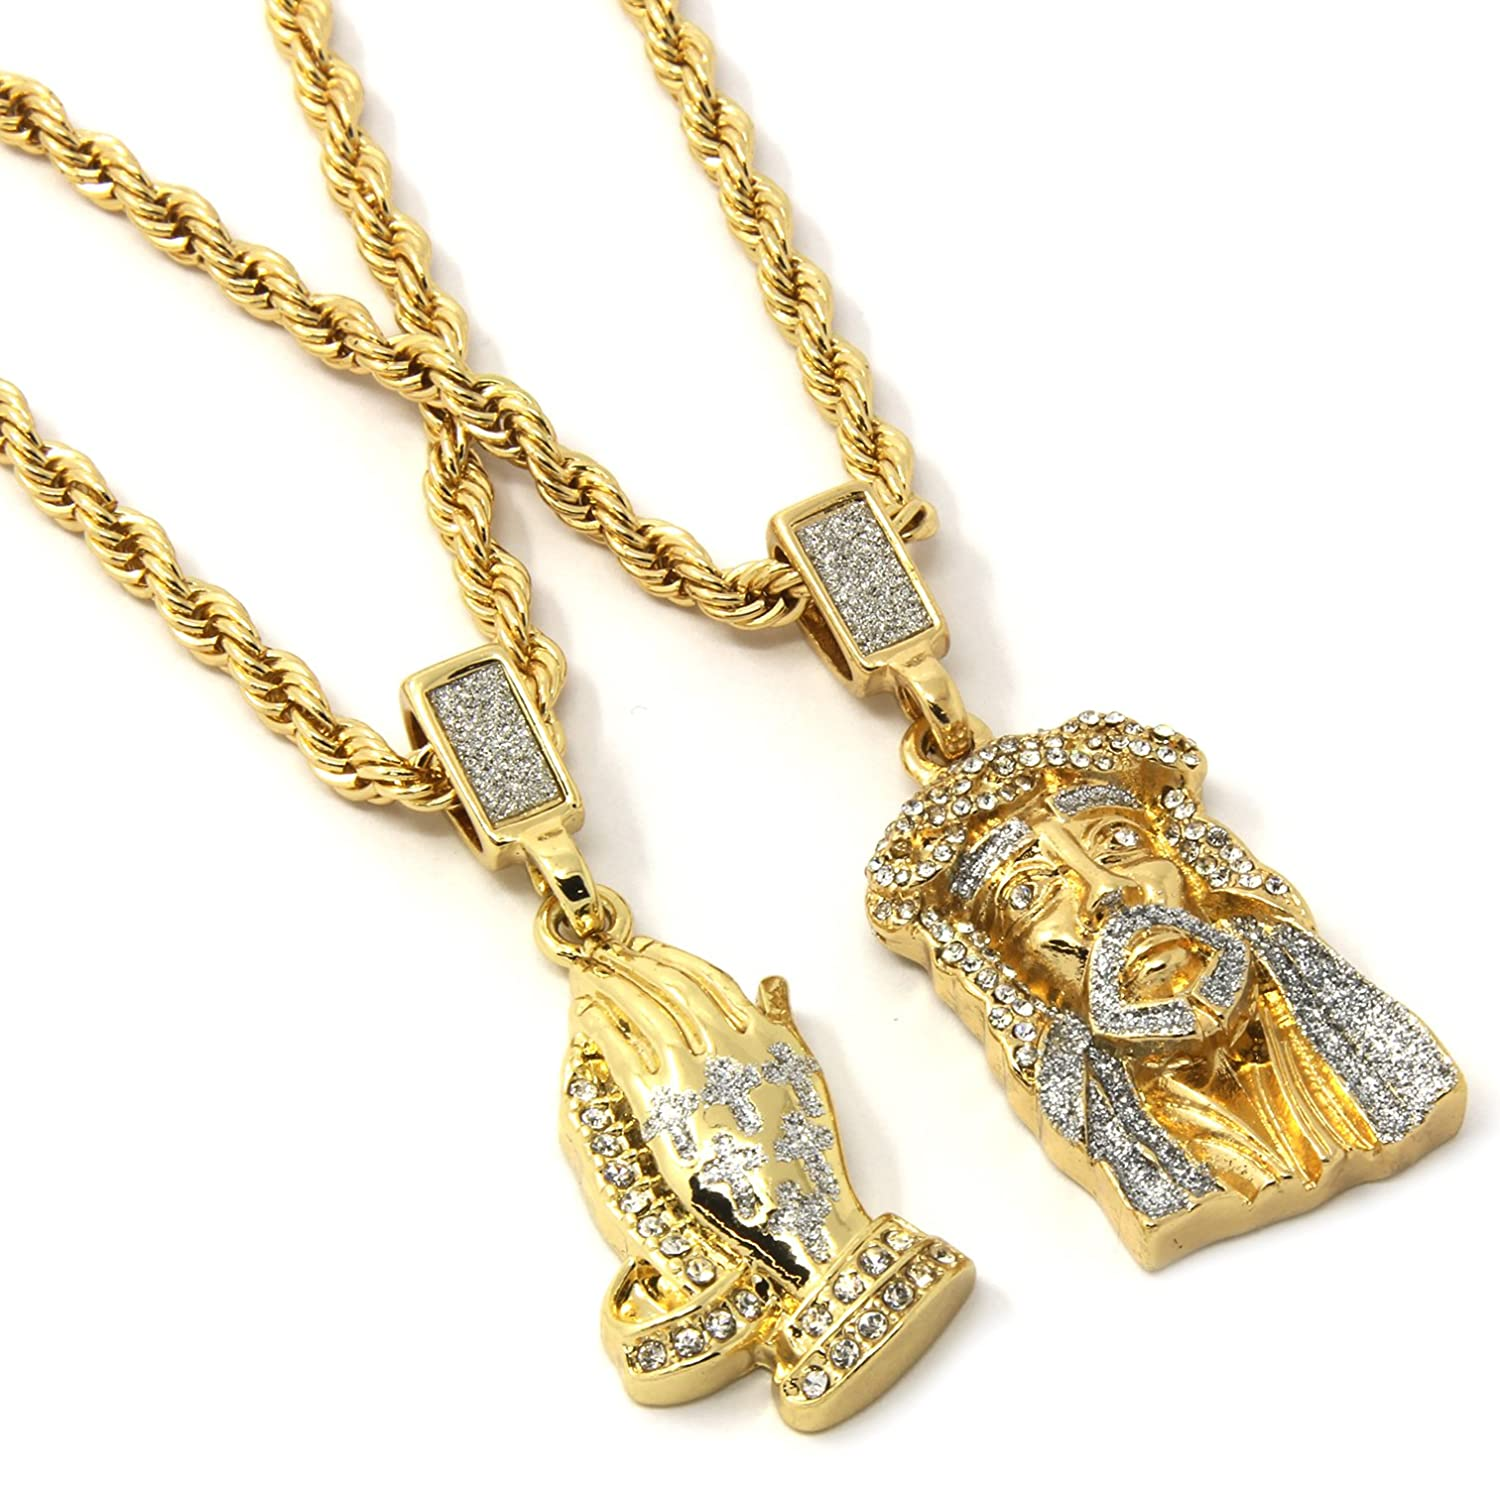 Mens gold two piece jesus prayer hand set pendant hip hop 24 rope mens gold two piece jesus prayer hand set pendant hip hop 24 rope chain d421 amazon aloadofball Image collections